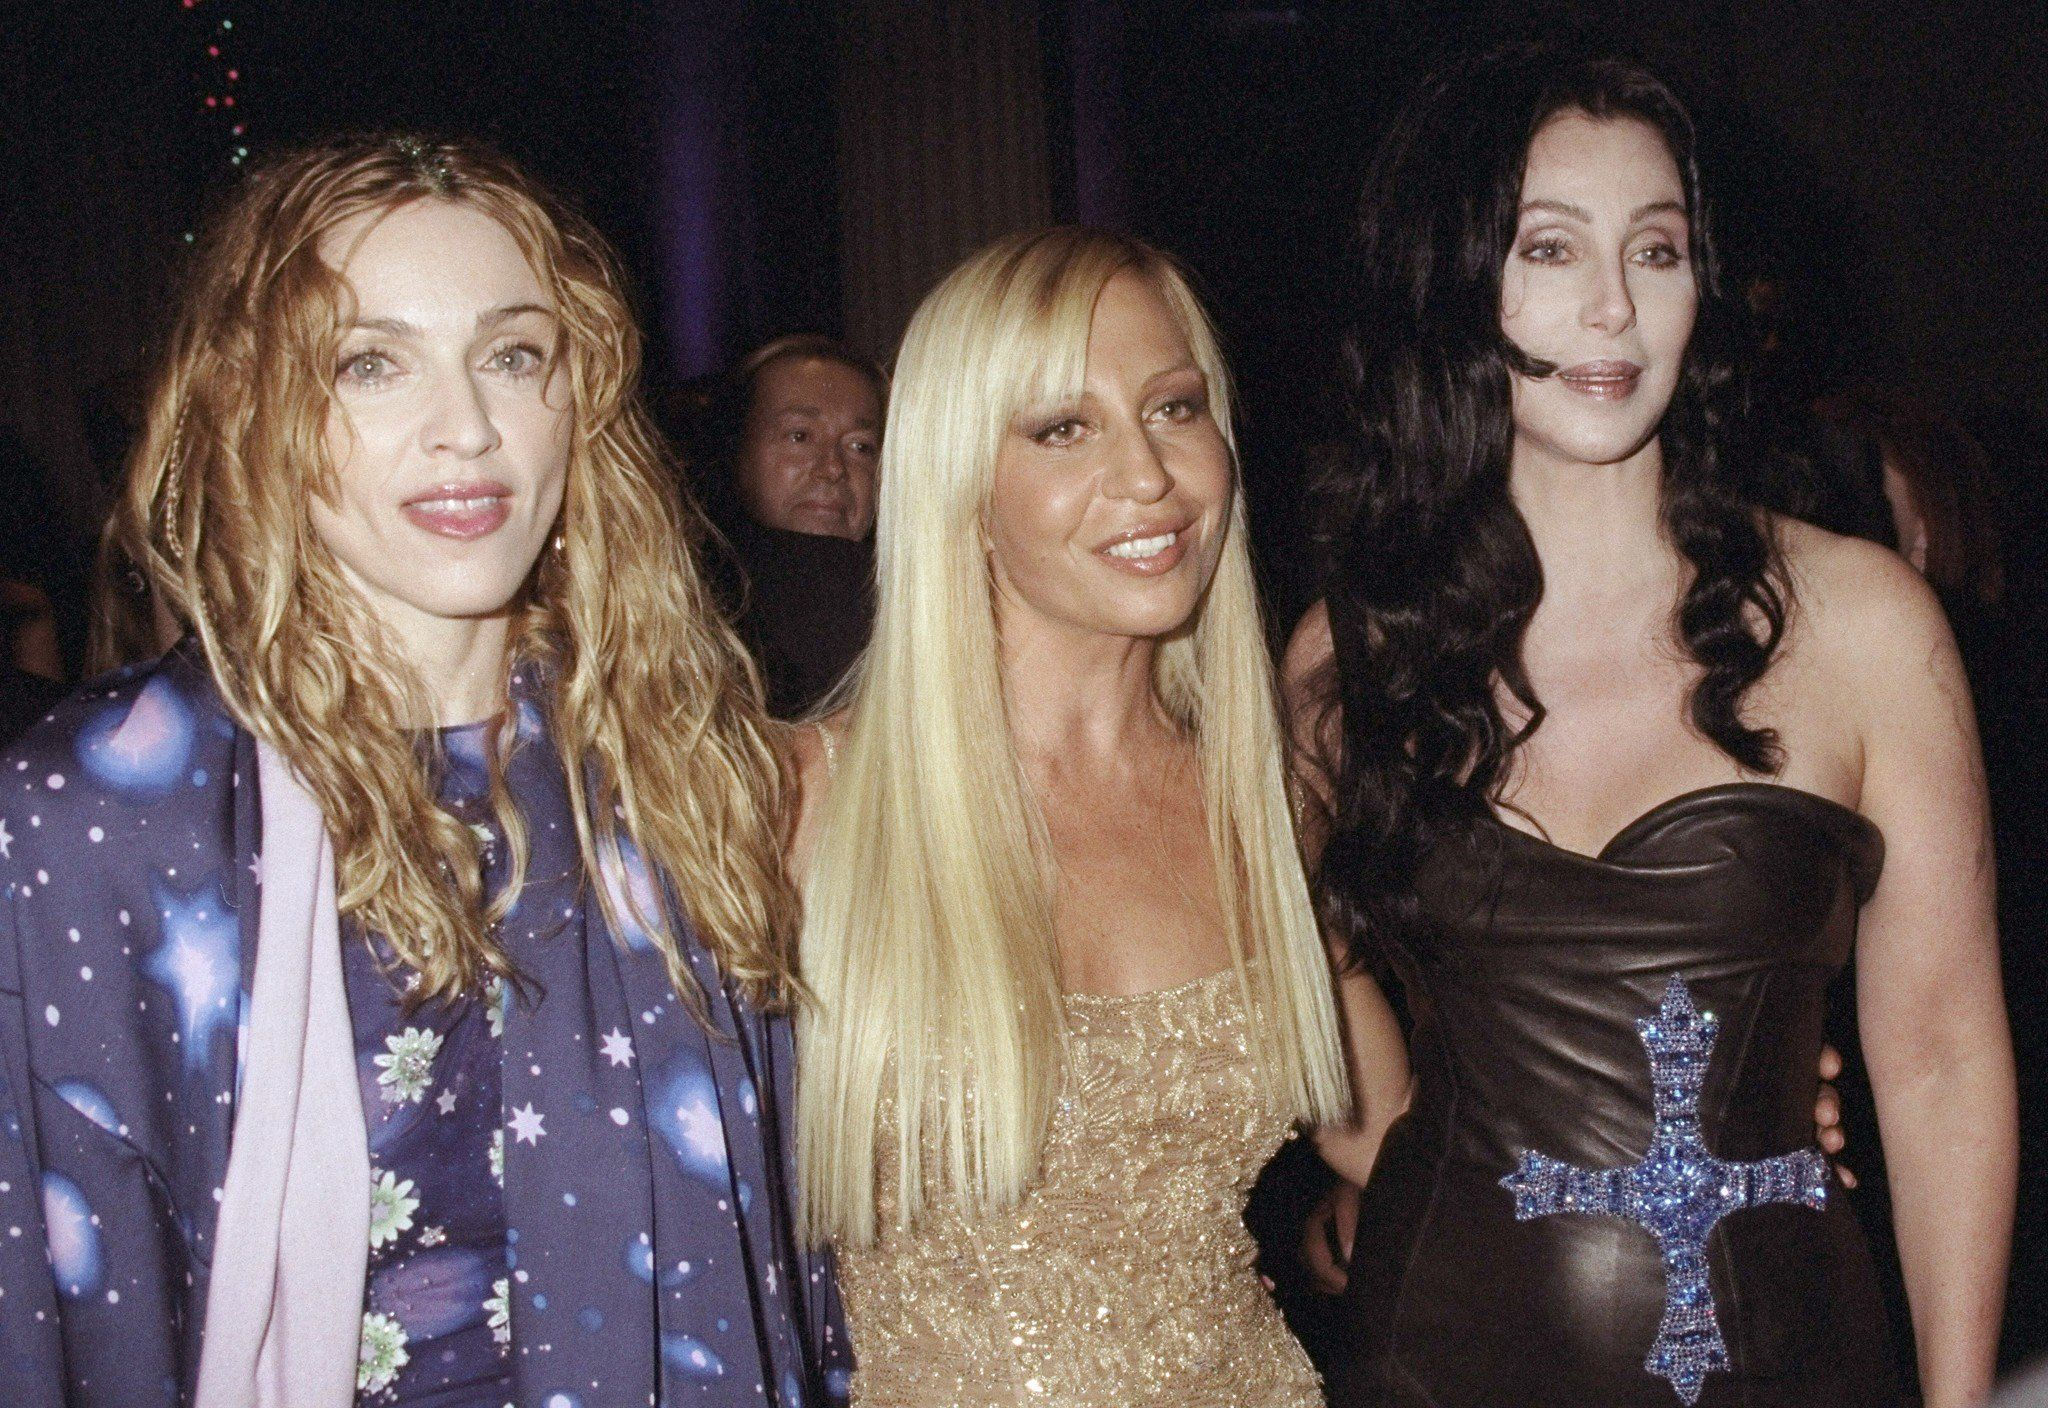 Madonna, Donatella Versace and Cher attend a gala tribute to Gianni Versace at the Metropolitan Museum of Art in New York City.